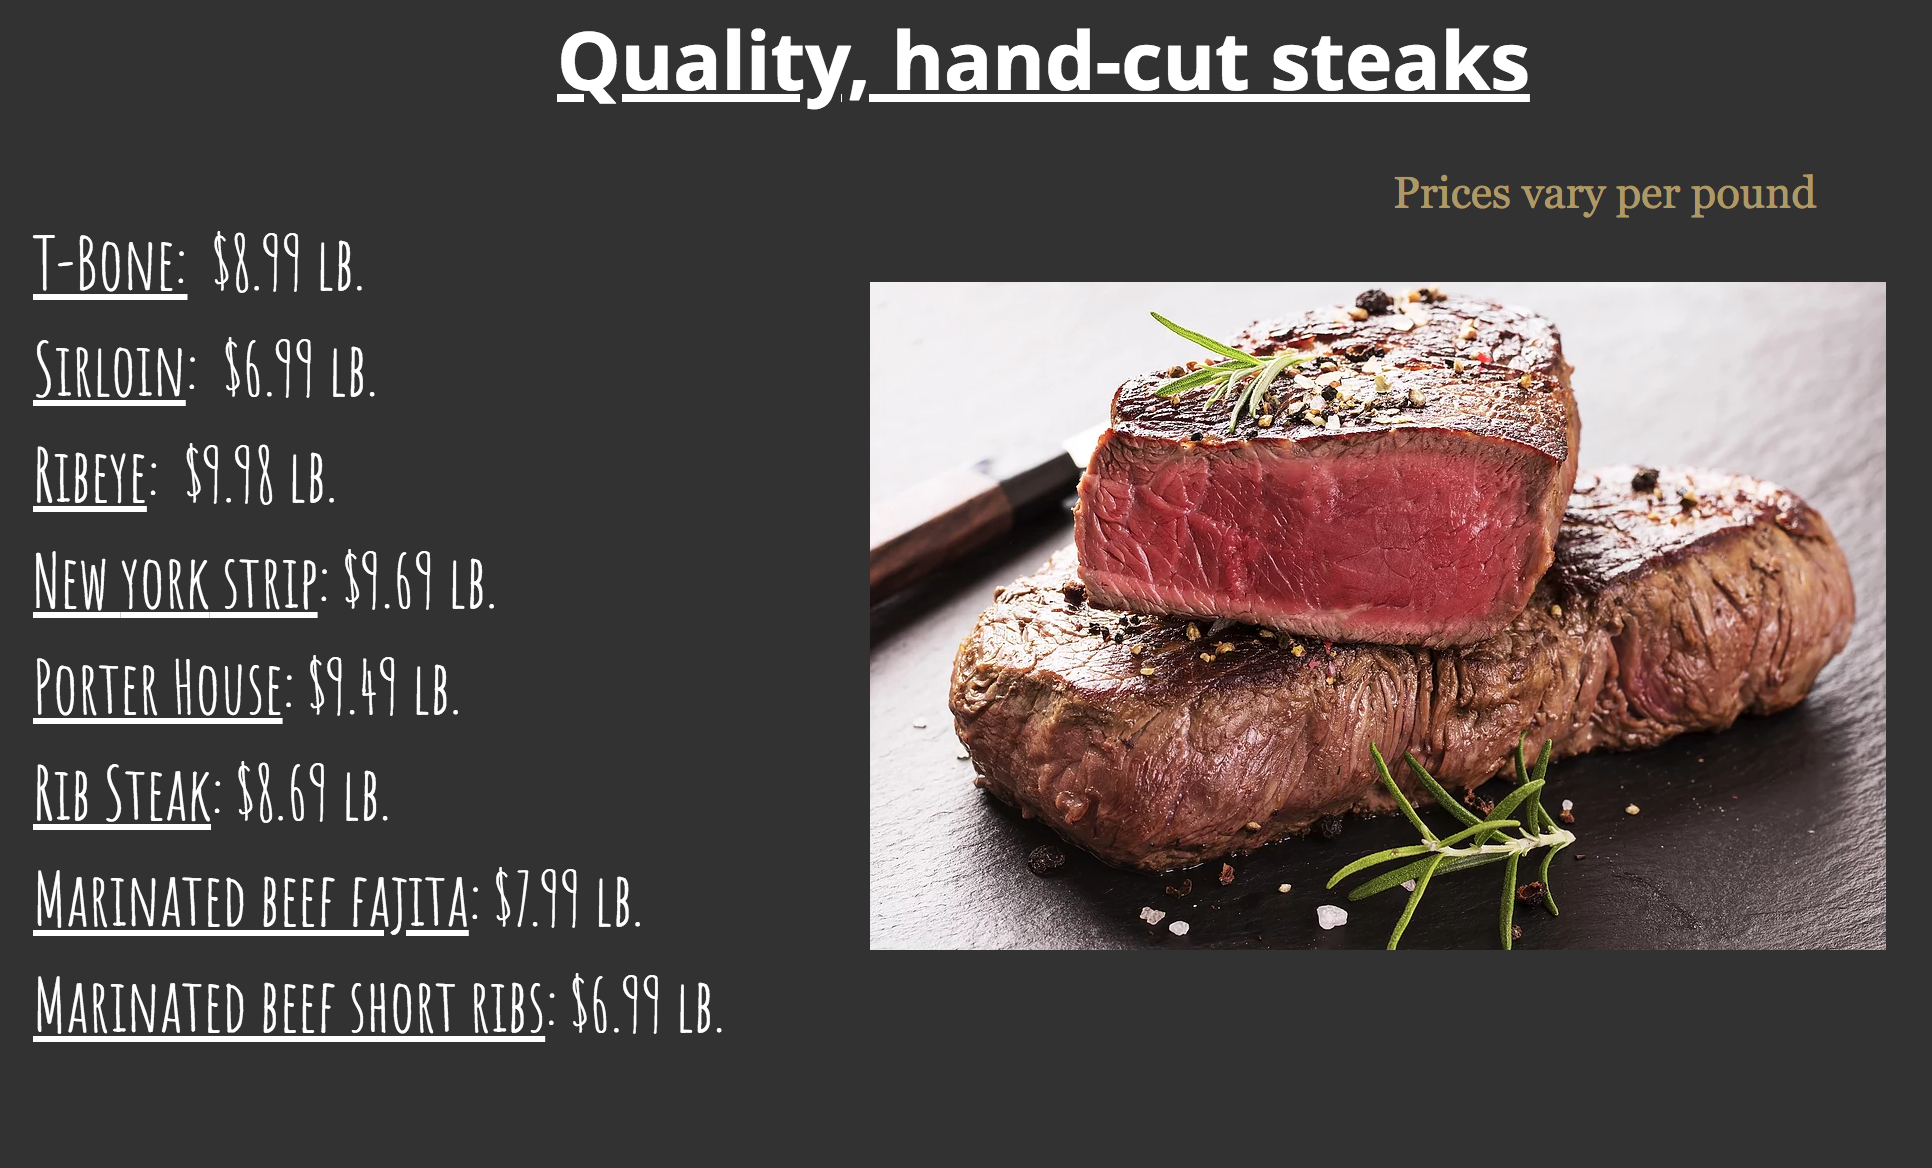 Craft beef prices!